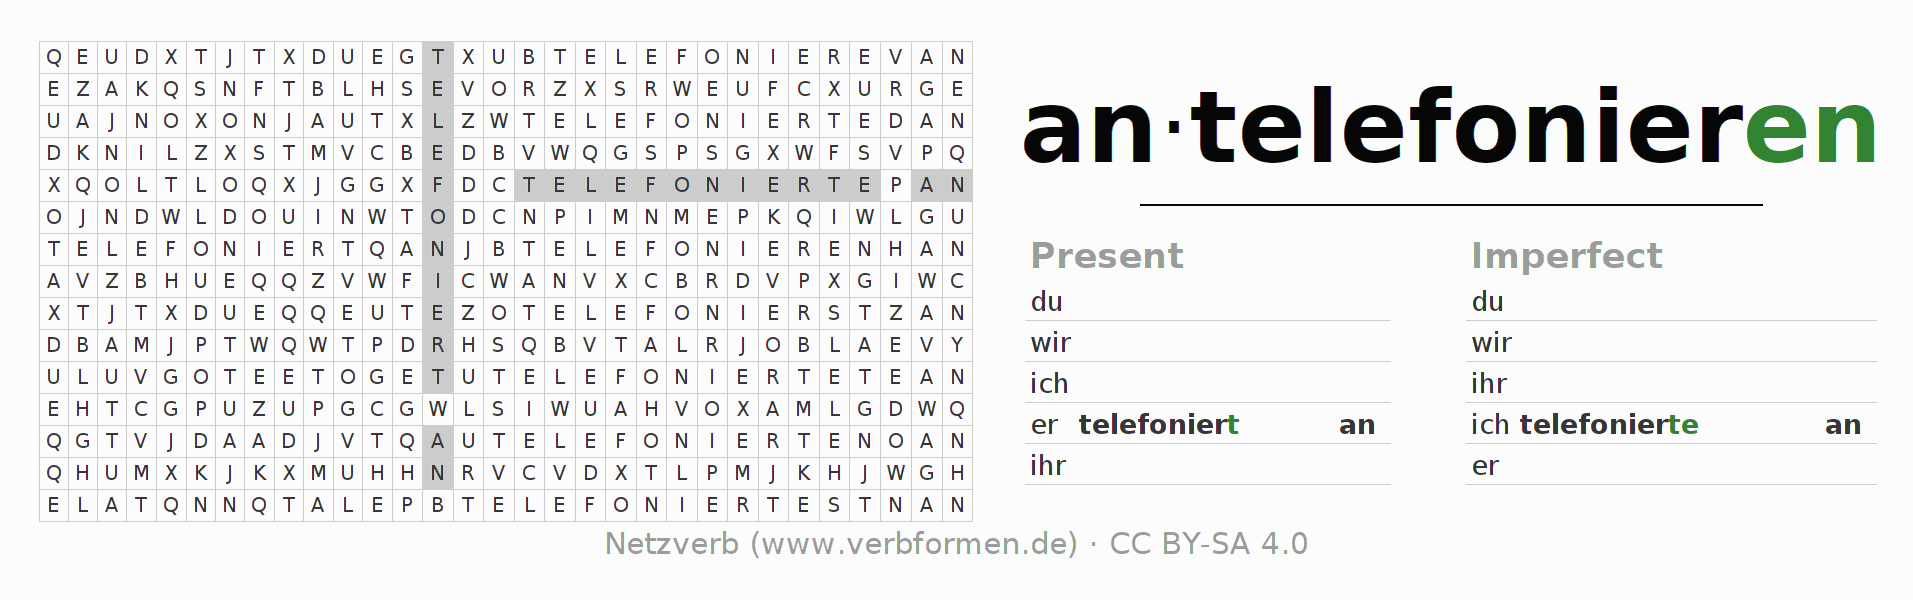 Word search puzzle for the conjugation of the verb antelefonieren